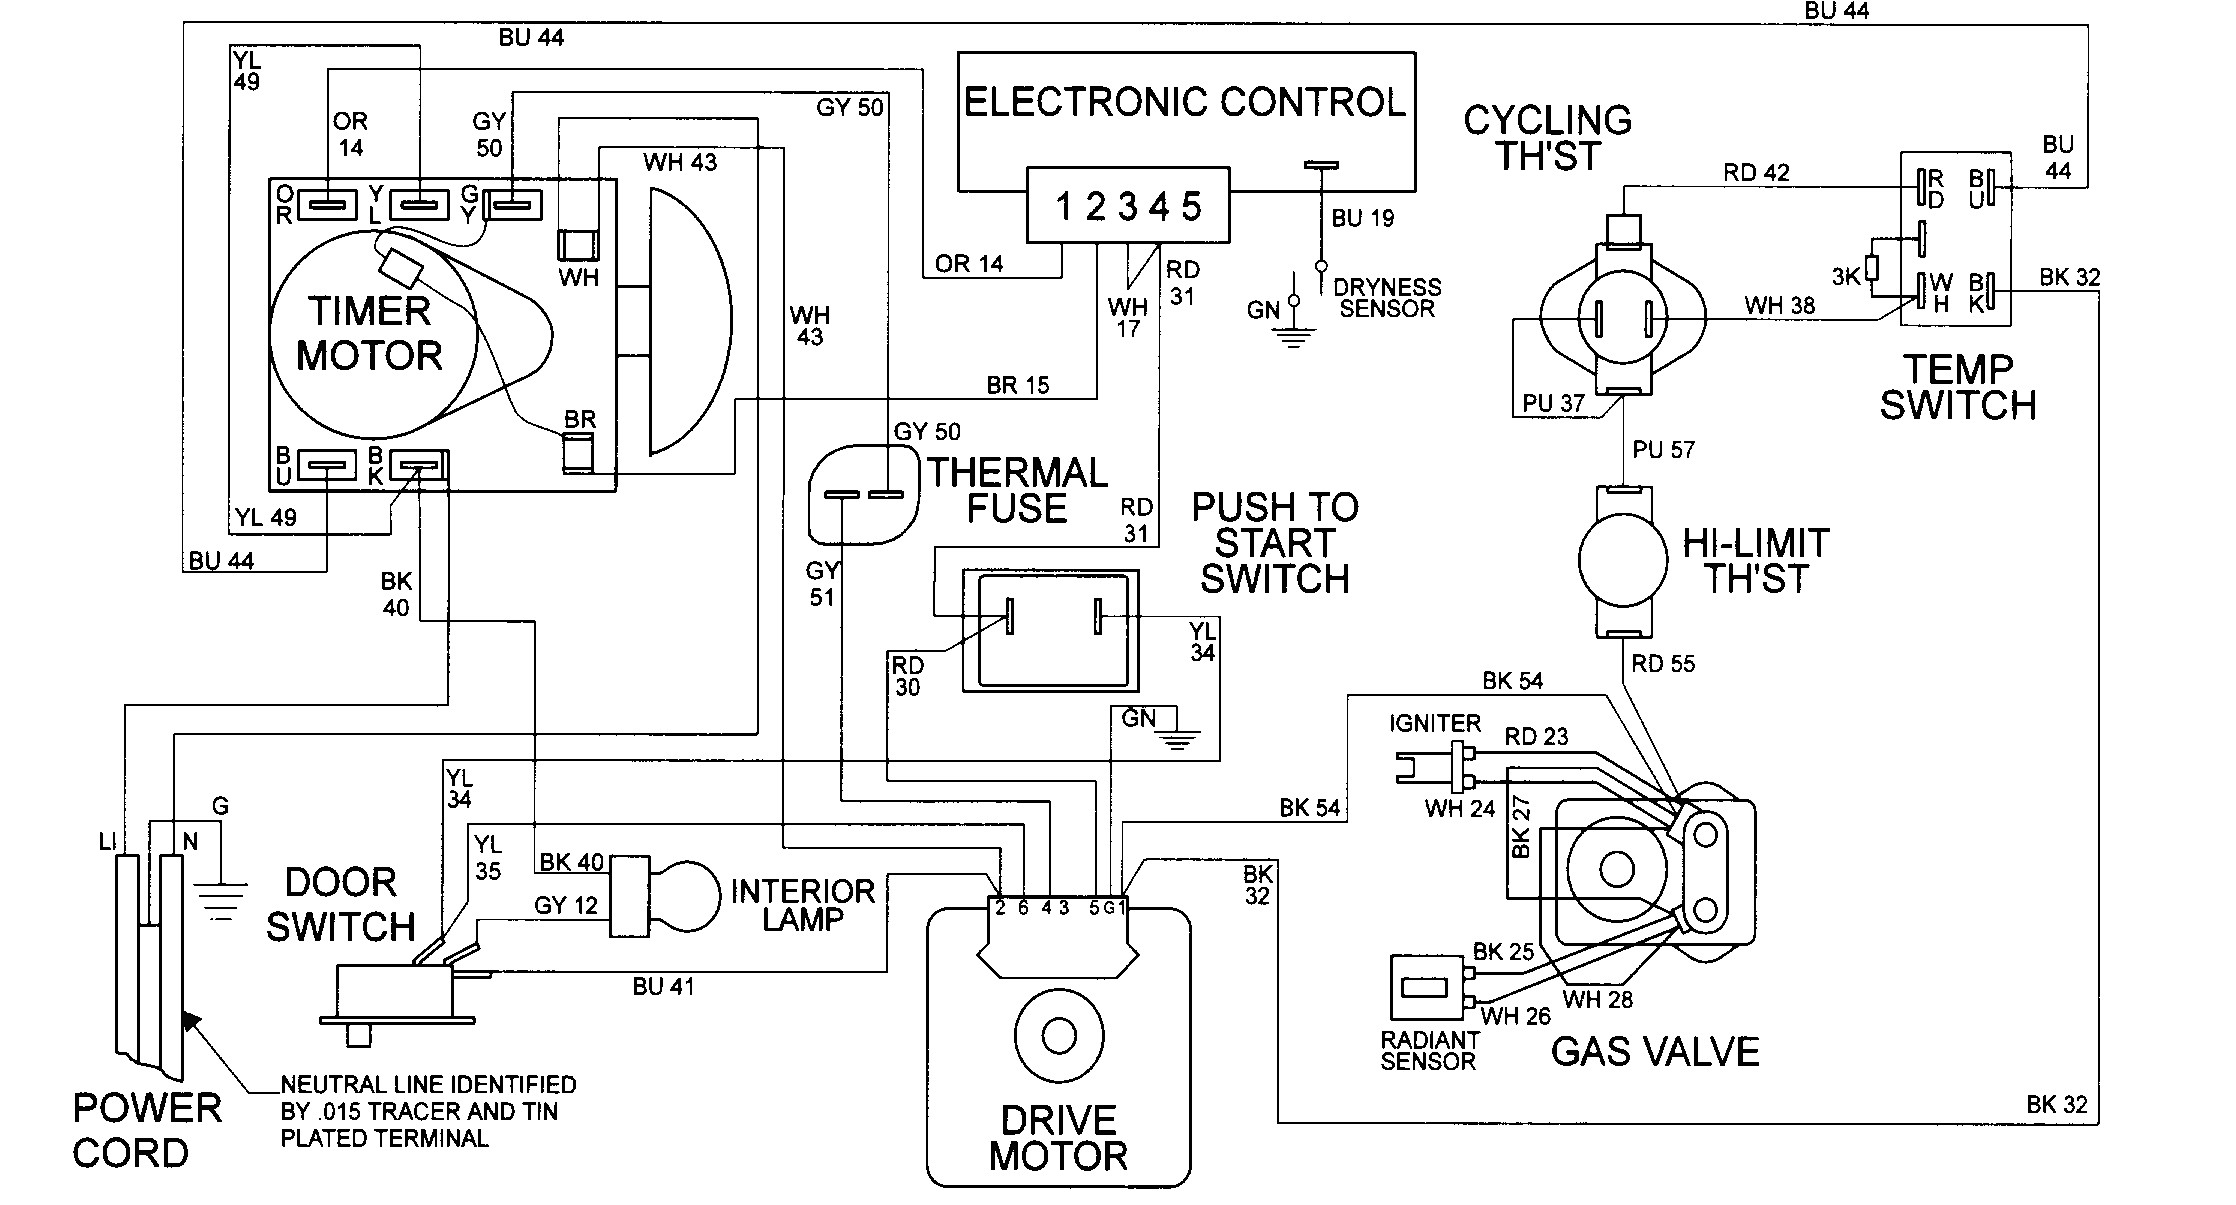 Amana Washer Wiring Diagram Explained Diagrams Motor Wire Electric Dryer Data Schema U2022 Schematic For Clothes